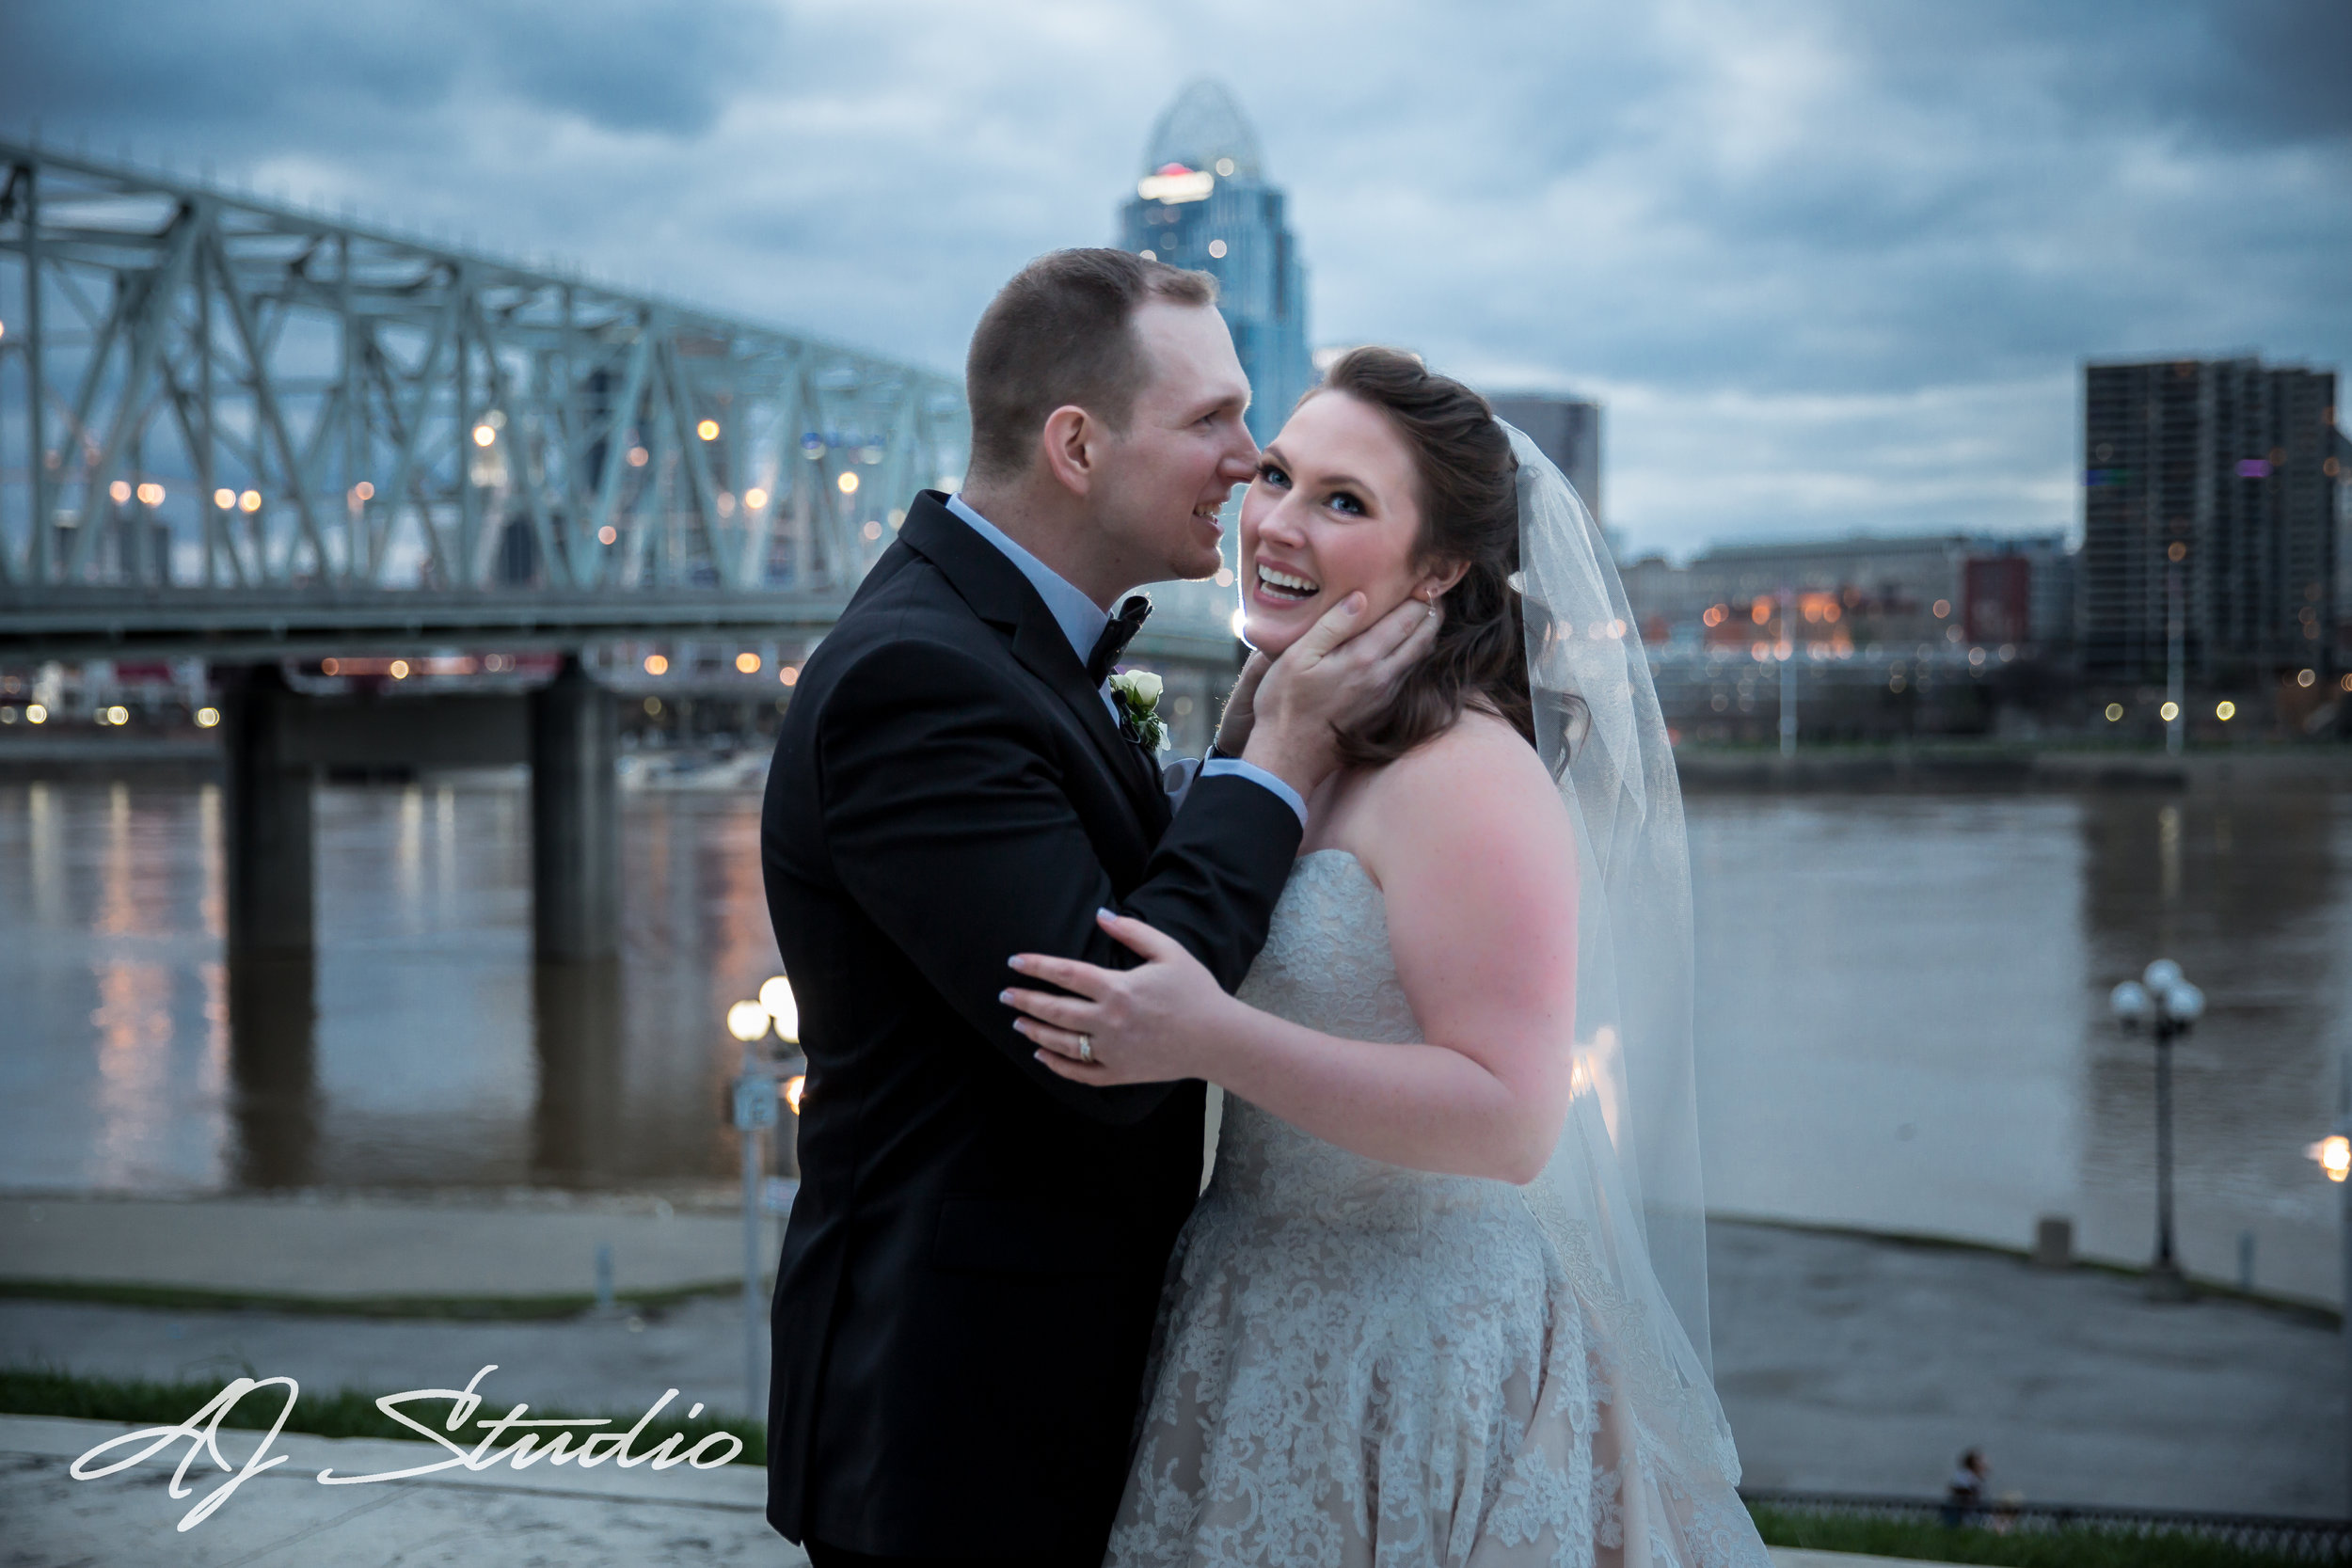 If you are interested in booking Newport Aquarium for your wedding, follow the link below. http://www.newportaquarium.com If you would like AJ Studio Photography by Angela & Jaime to Photograph your wedding, please contact us below. https://ajstudiollc.com/say-hi/